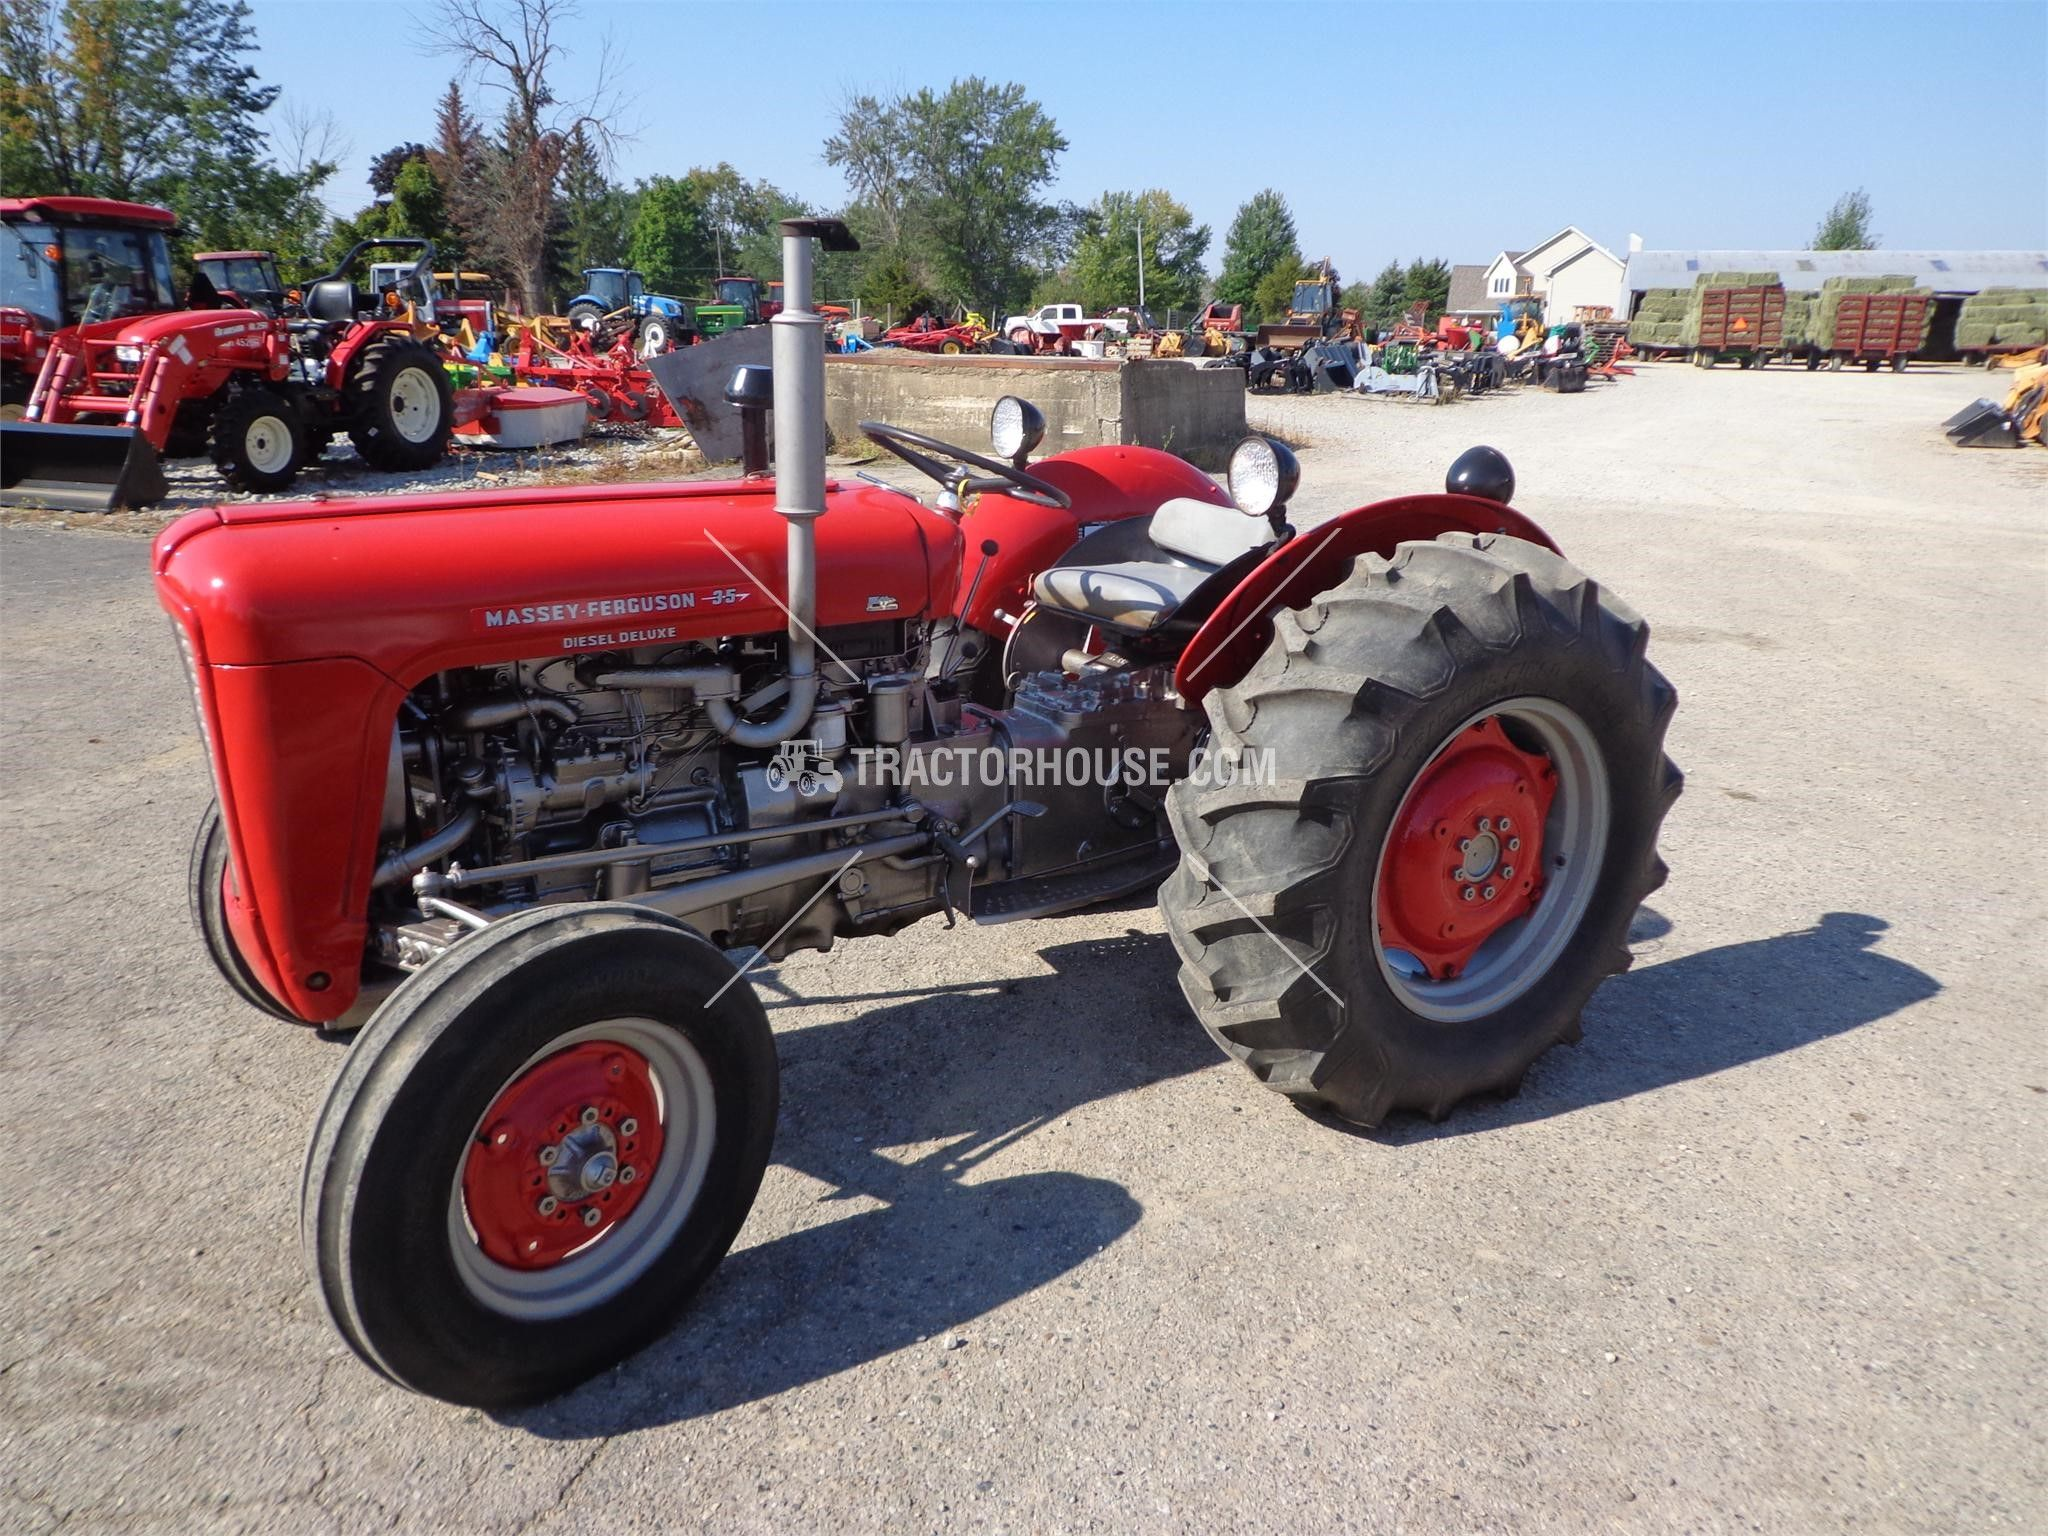 MASSEY-FERGUSON 35 Less than 40 HP For Sale At TractorHouse.com Vintage  Tractors